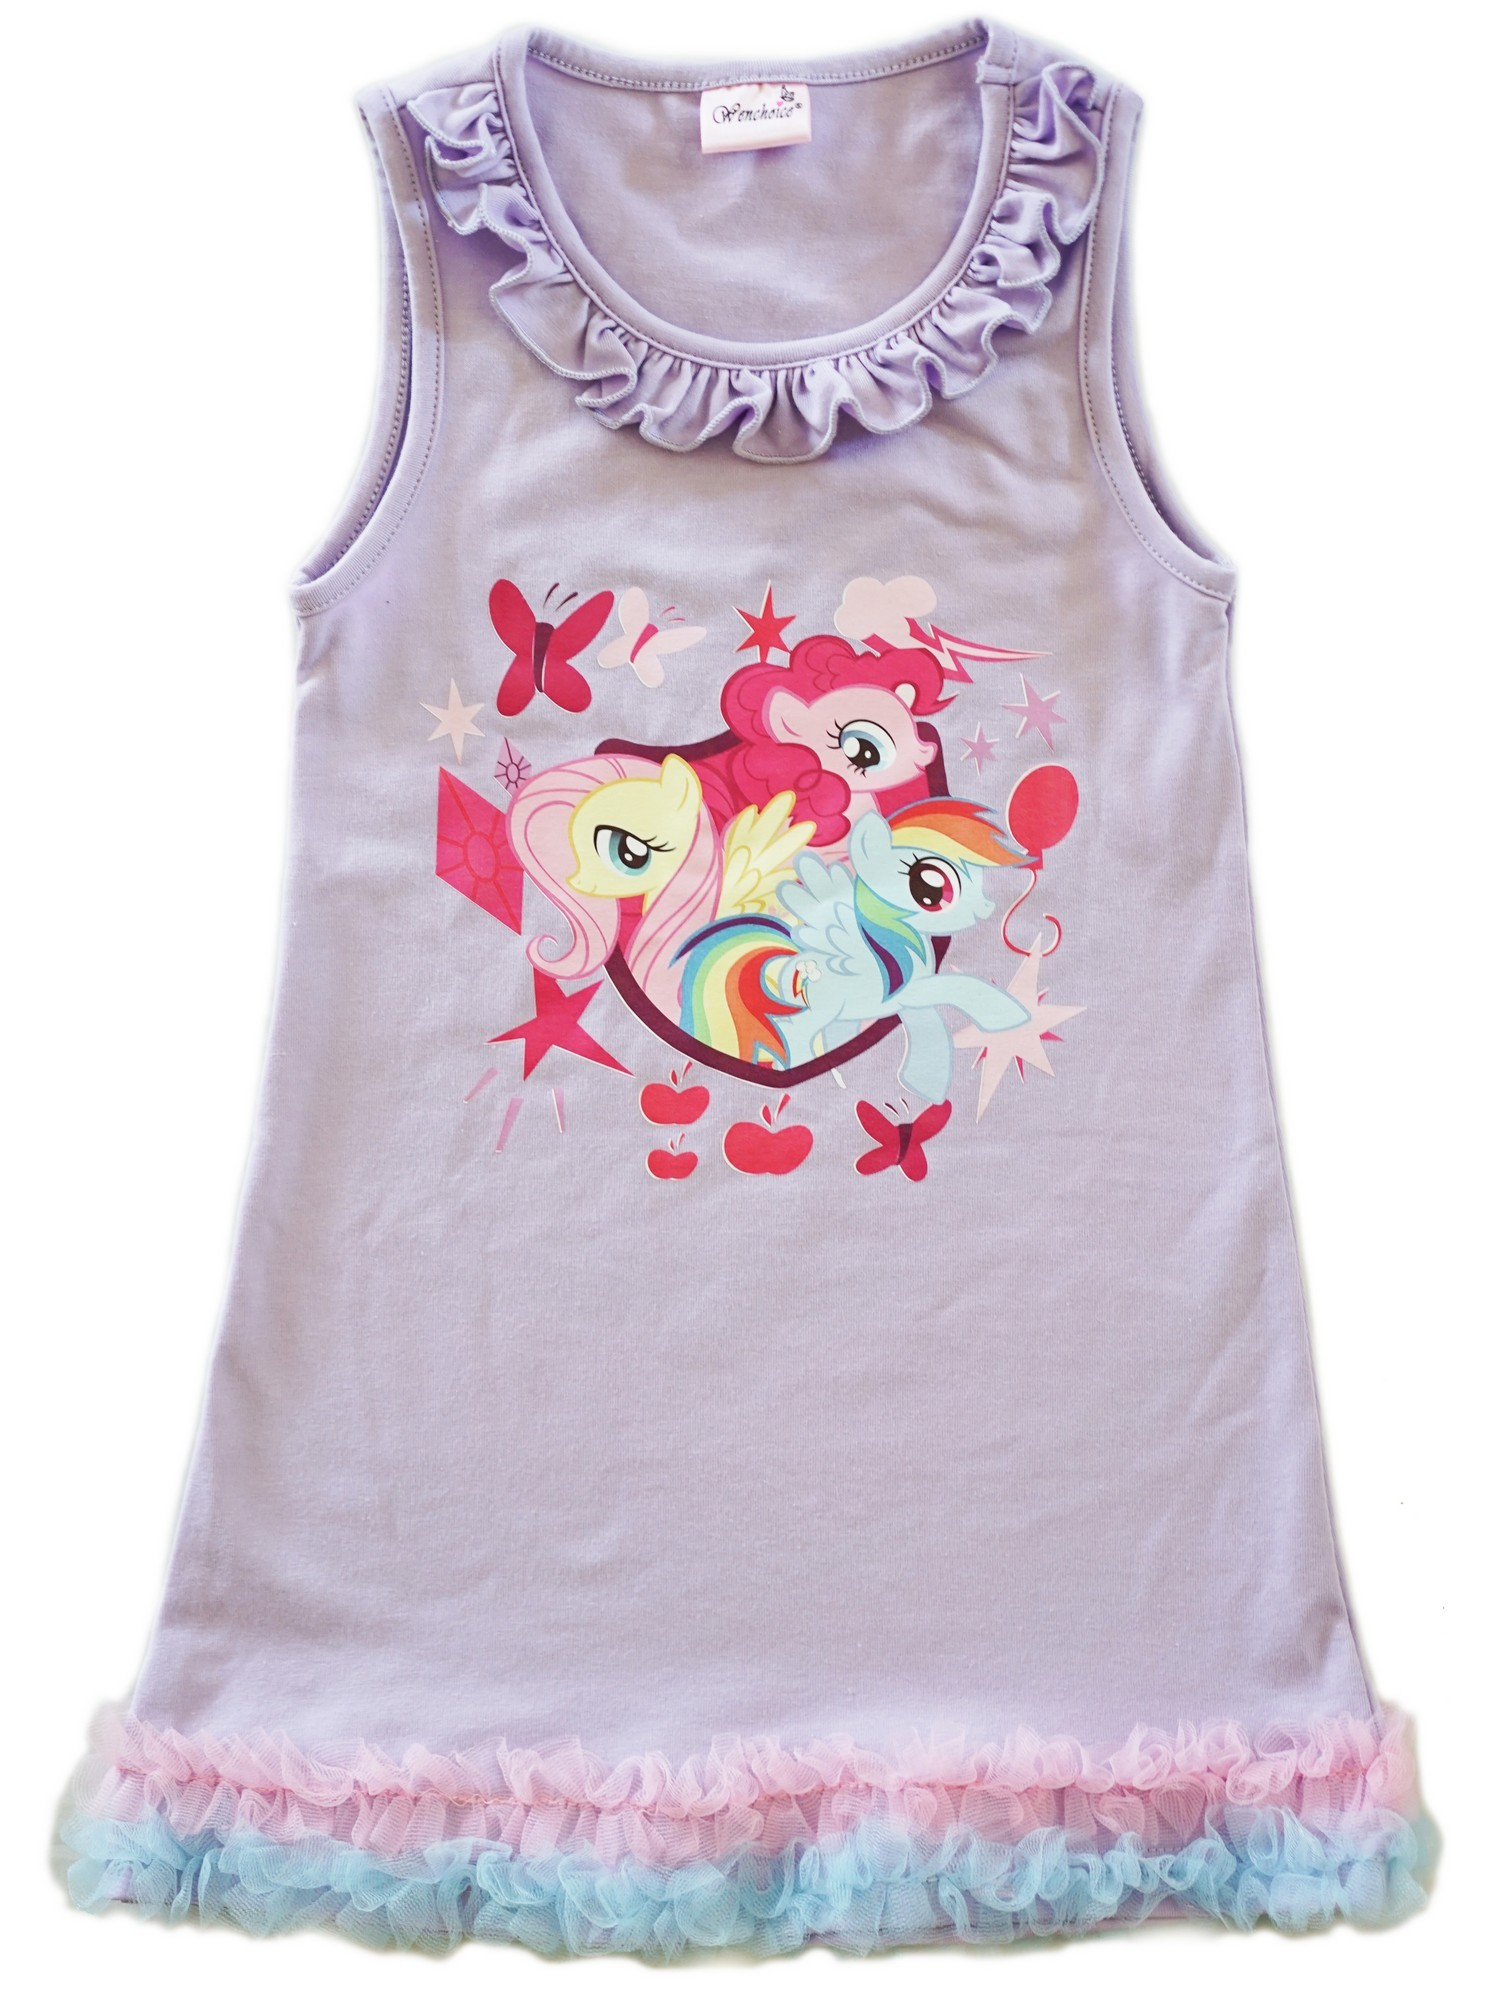 Wenchoice Girls Lavender My Little Pony Print Ruffle Cotton Dress